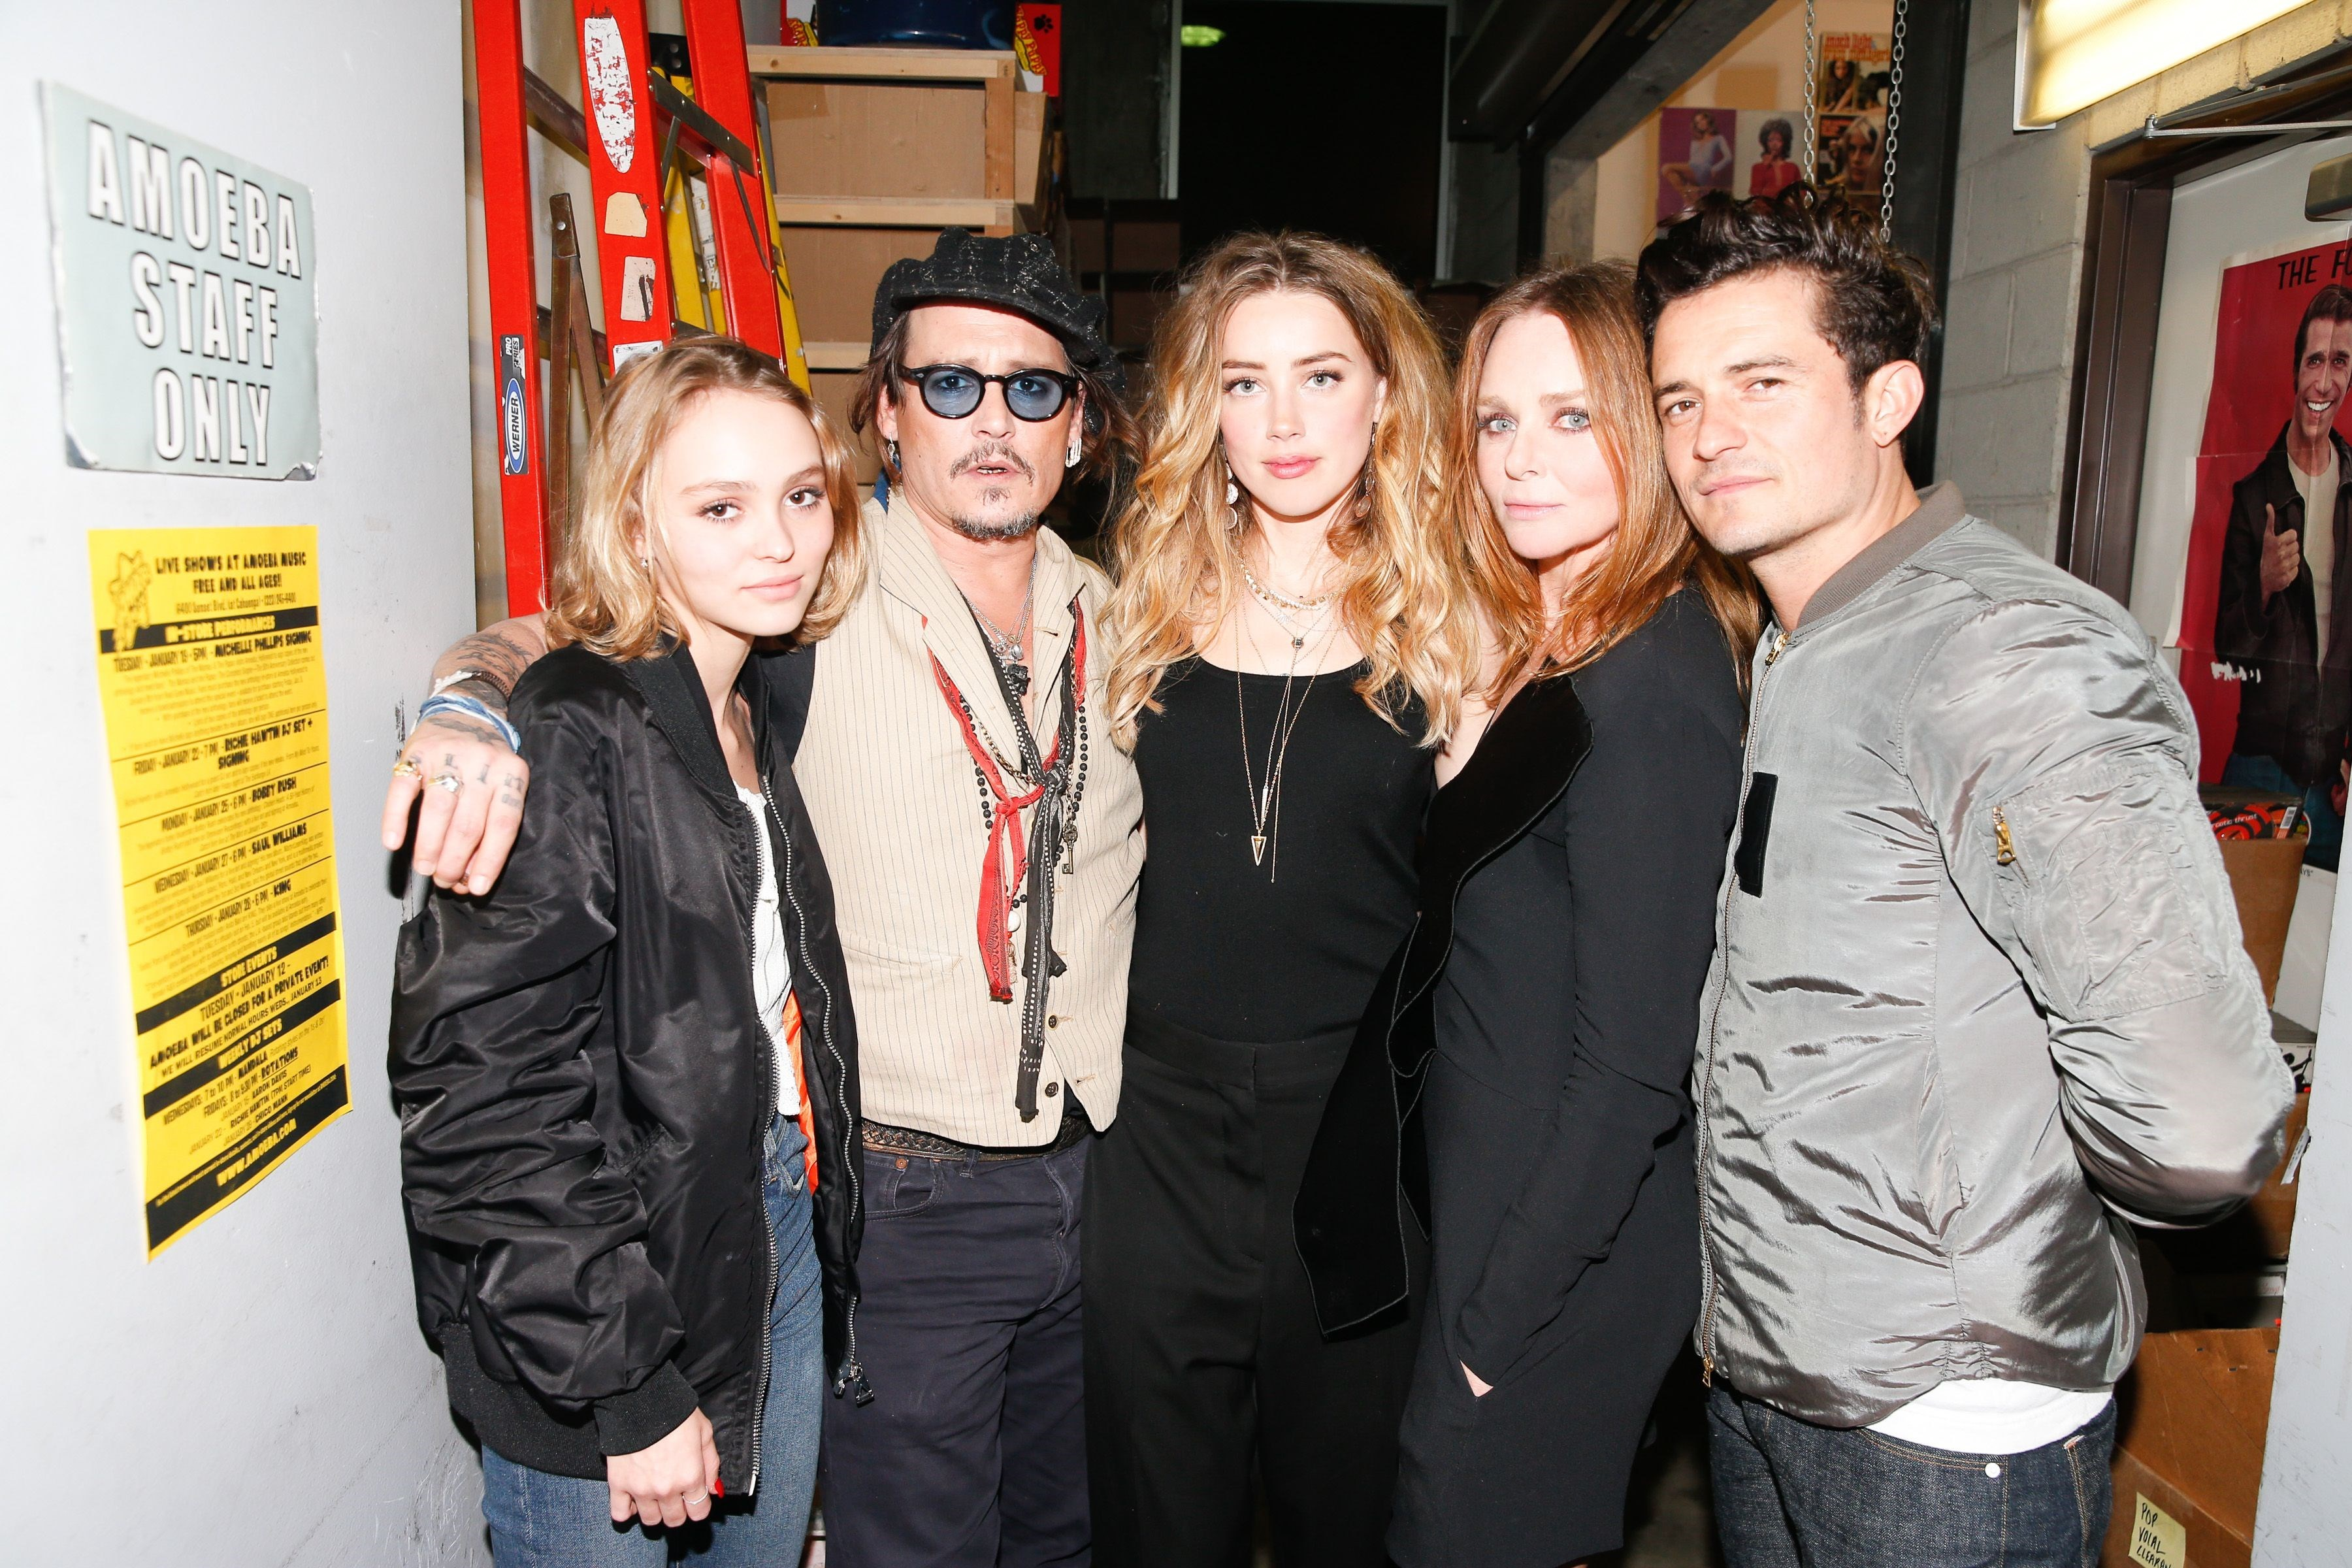 Amber Heard insiders challenge notion Johnny Depp's family 'hated' her